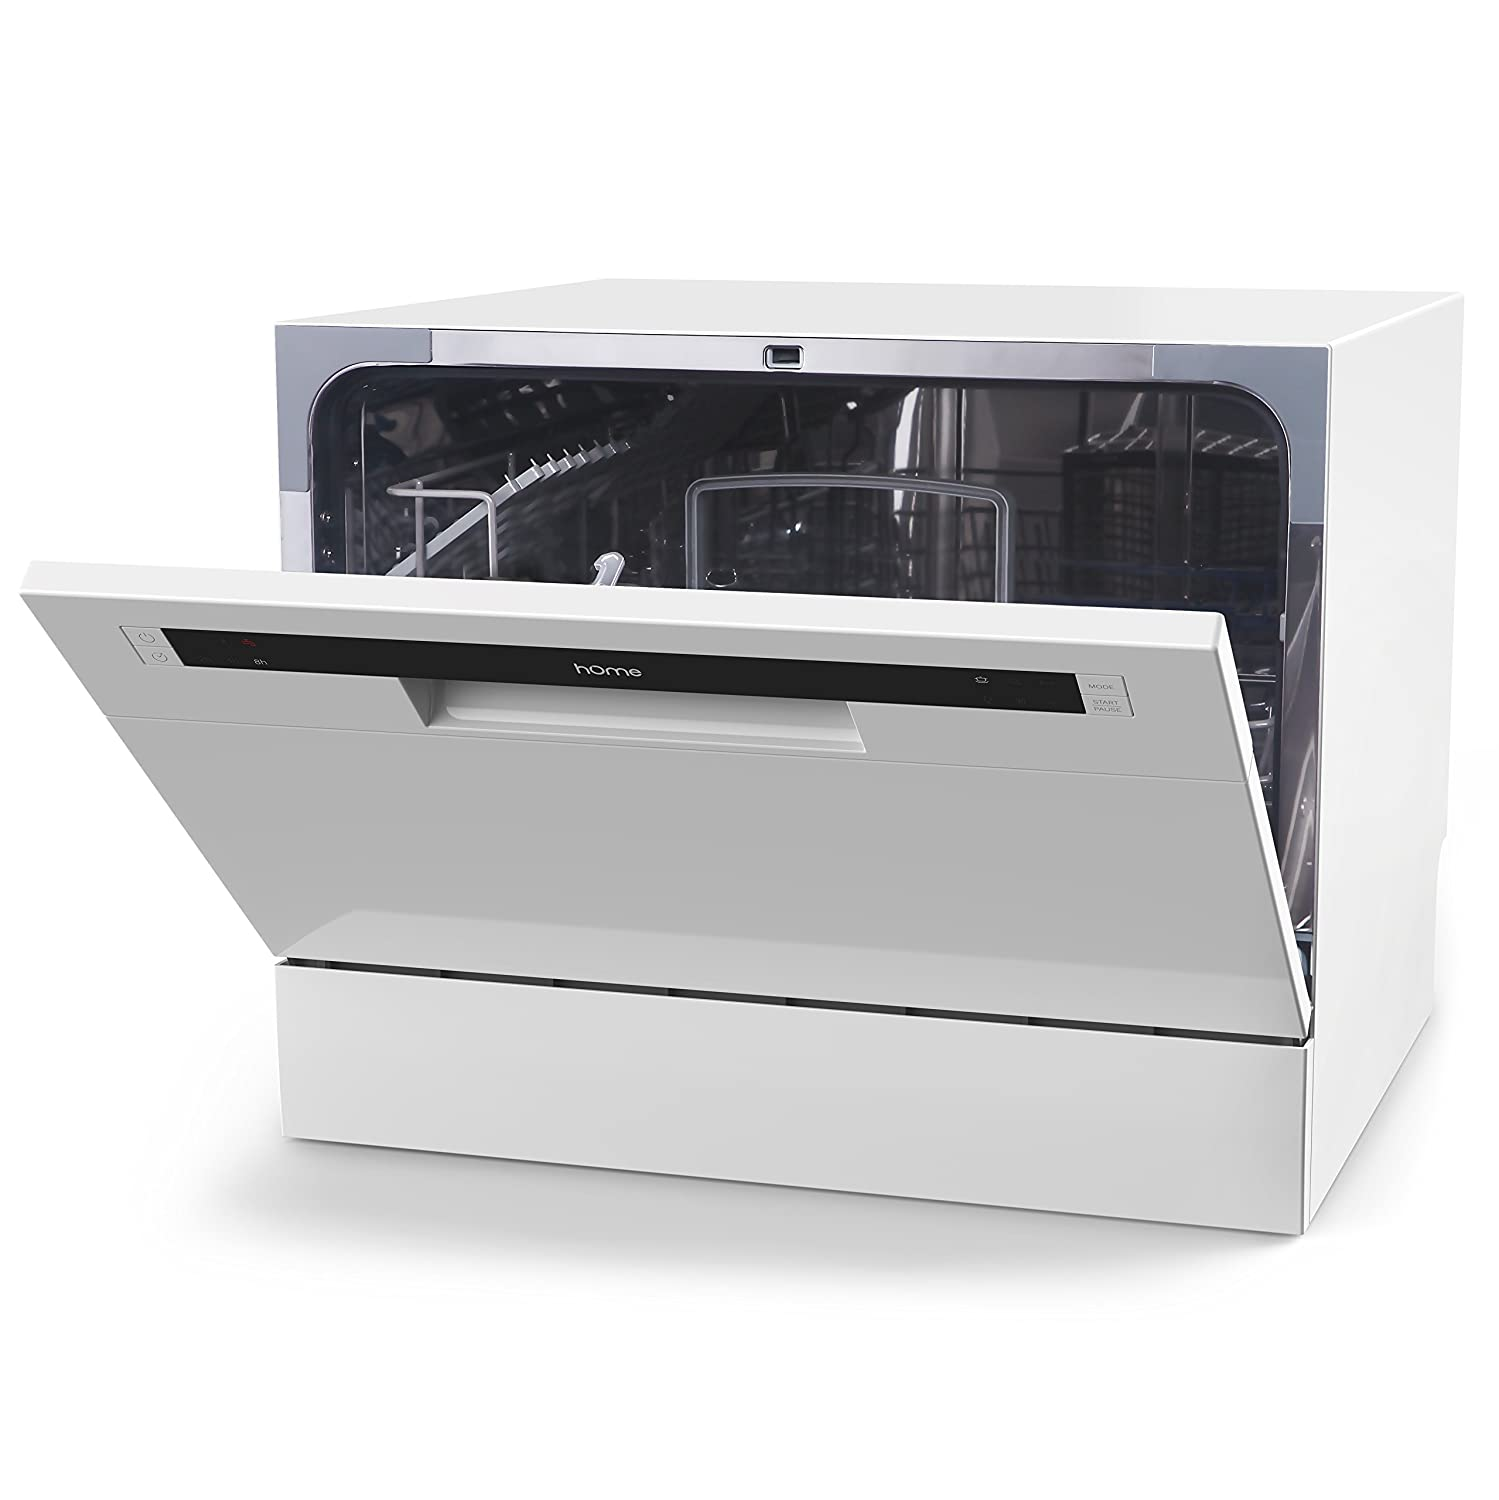 HomeLabs Compact Countertop Dishwasher Black Friday Deal